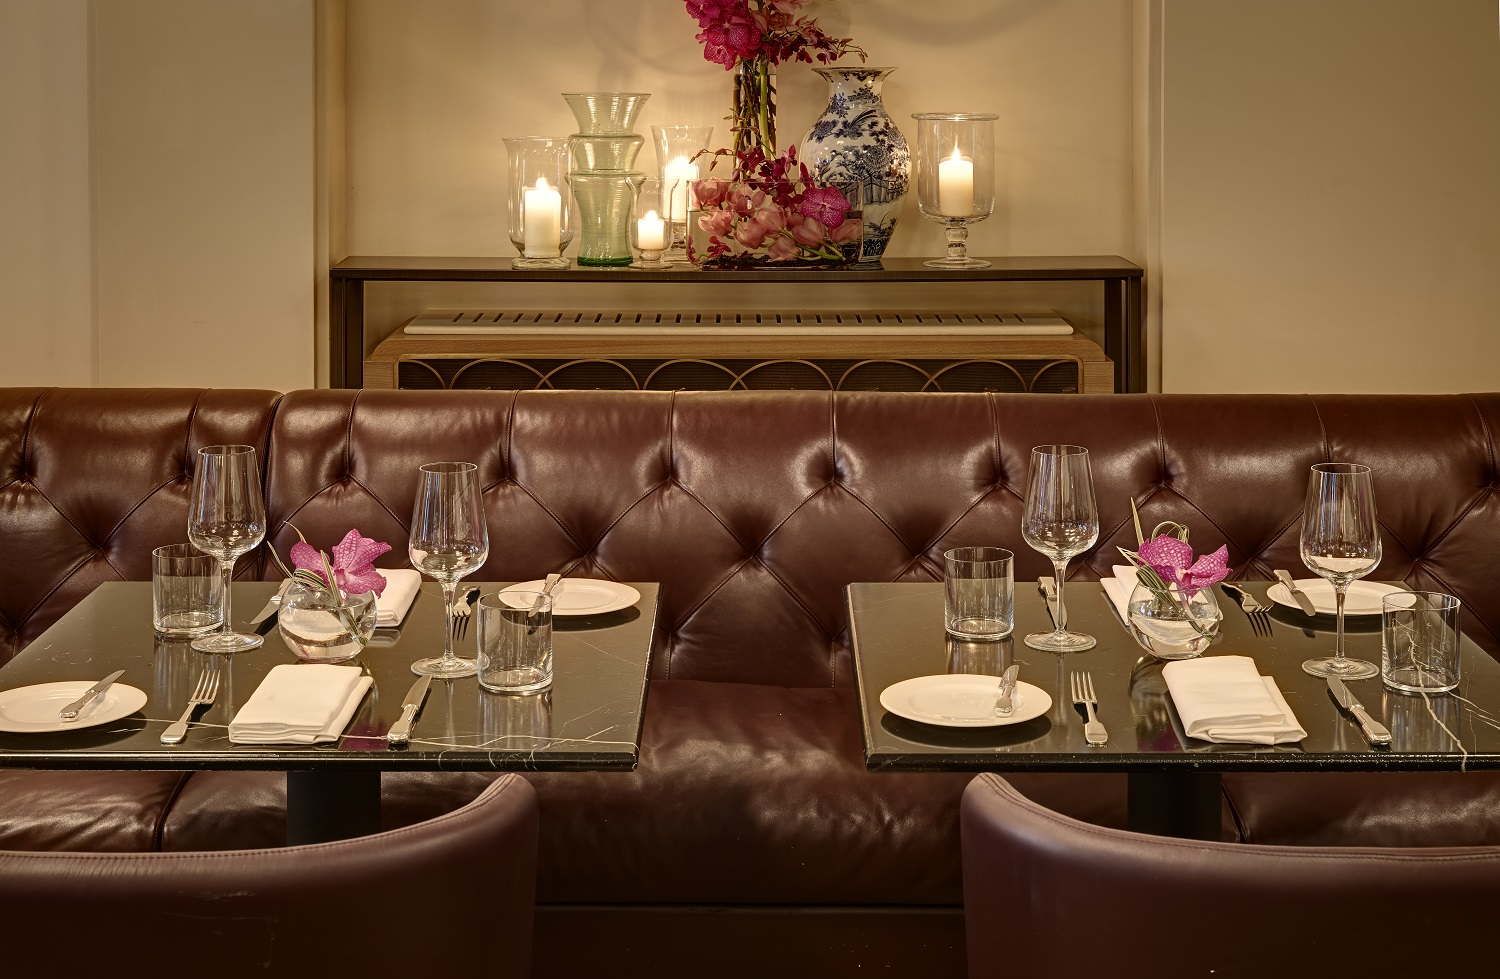 Reserve a table at Ten Room at Hotel Café Royal